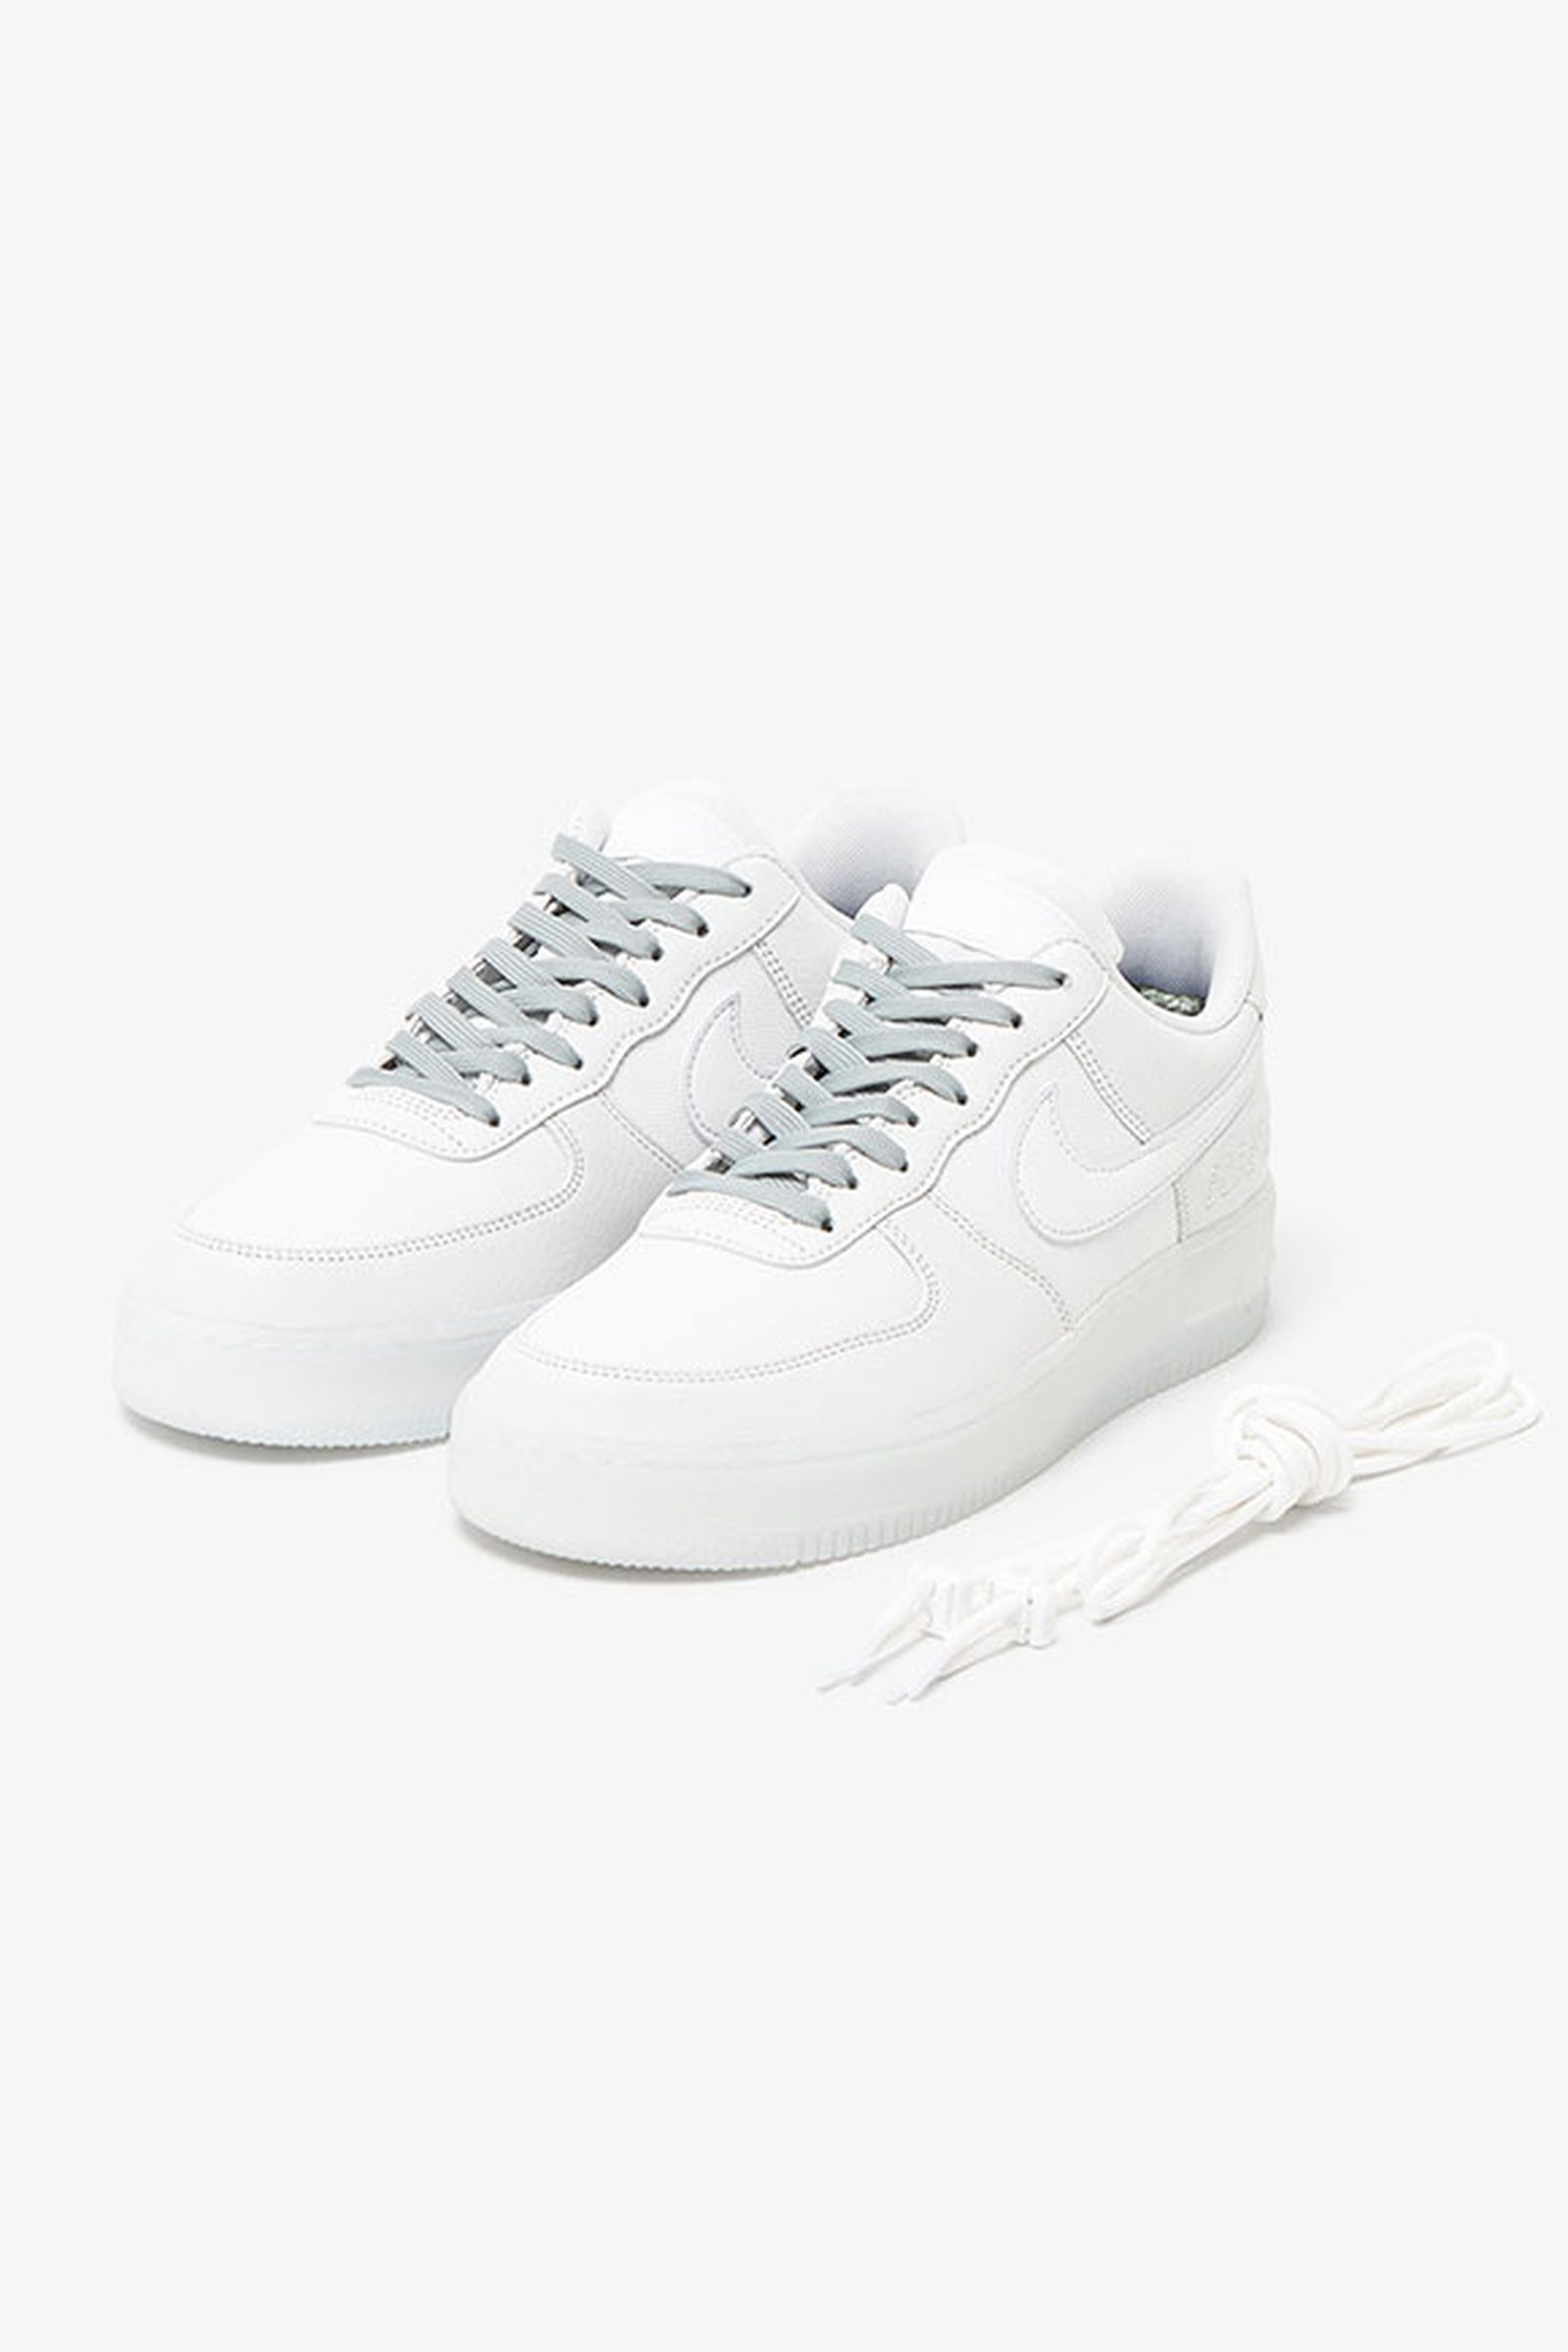 nike-air-force-1-gore-tex-white-release-date-price-06